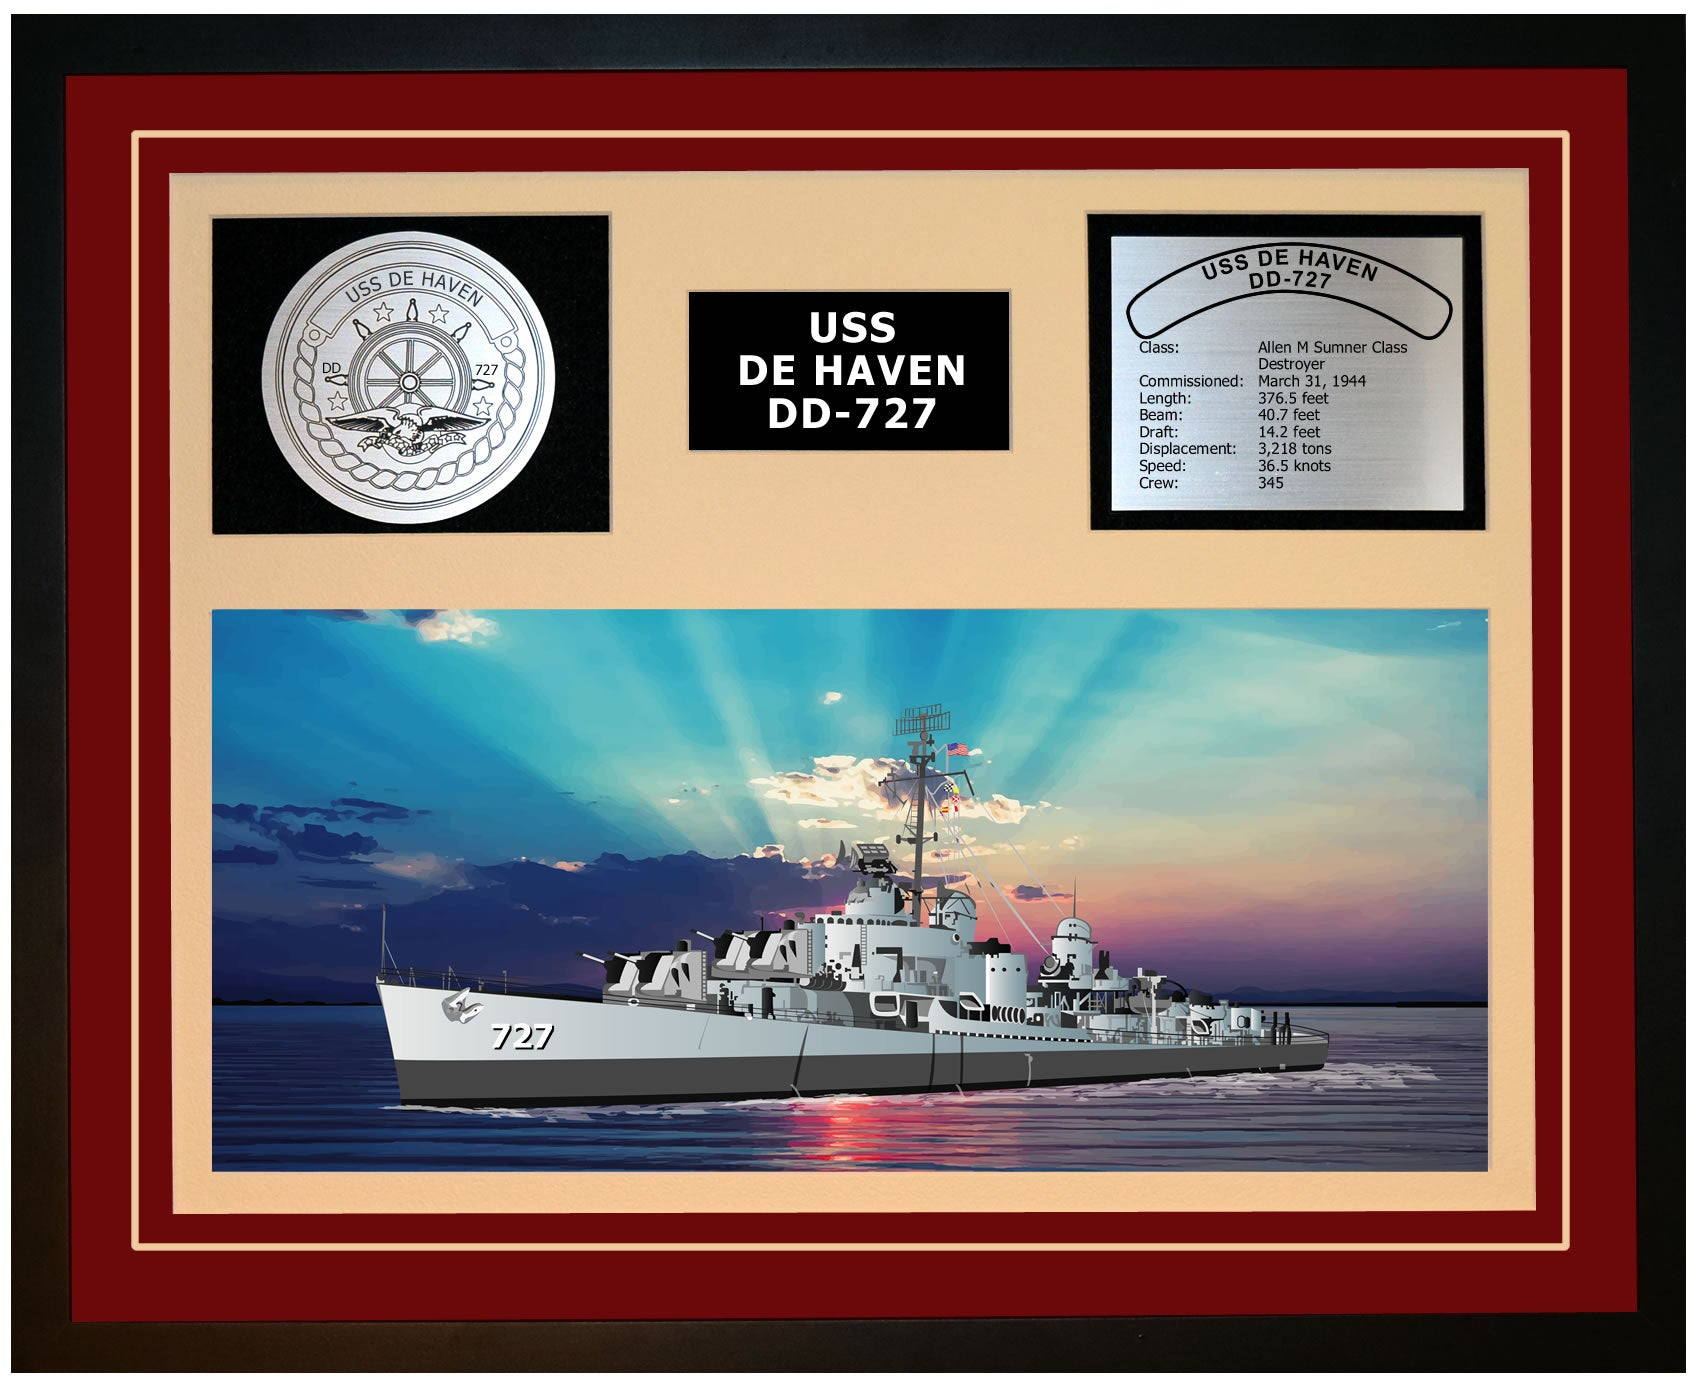 USS DE HAVEN DD-727 Framed Navy Ship Display Burgundy